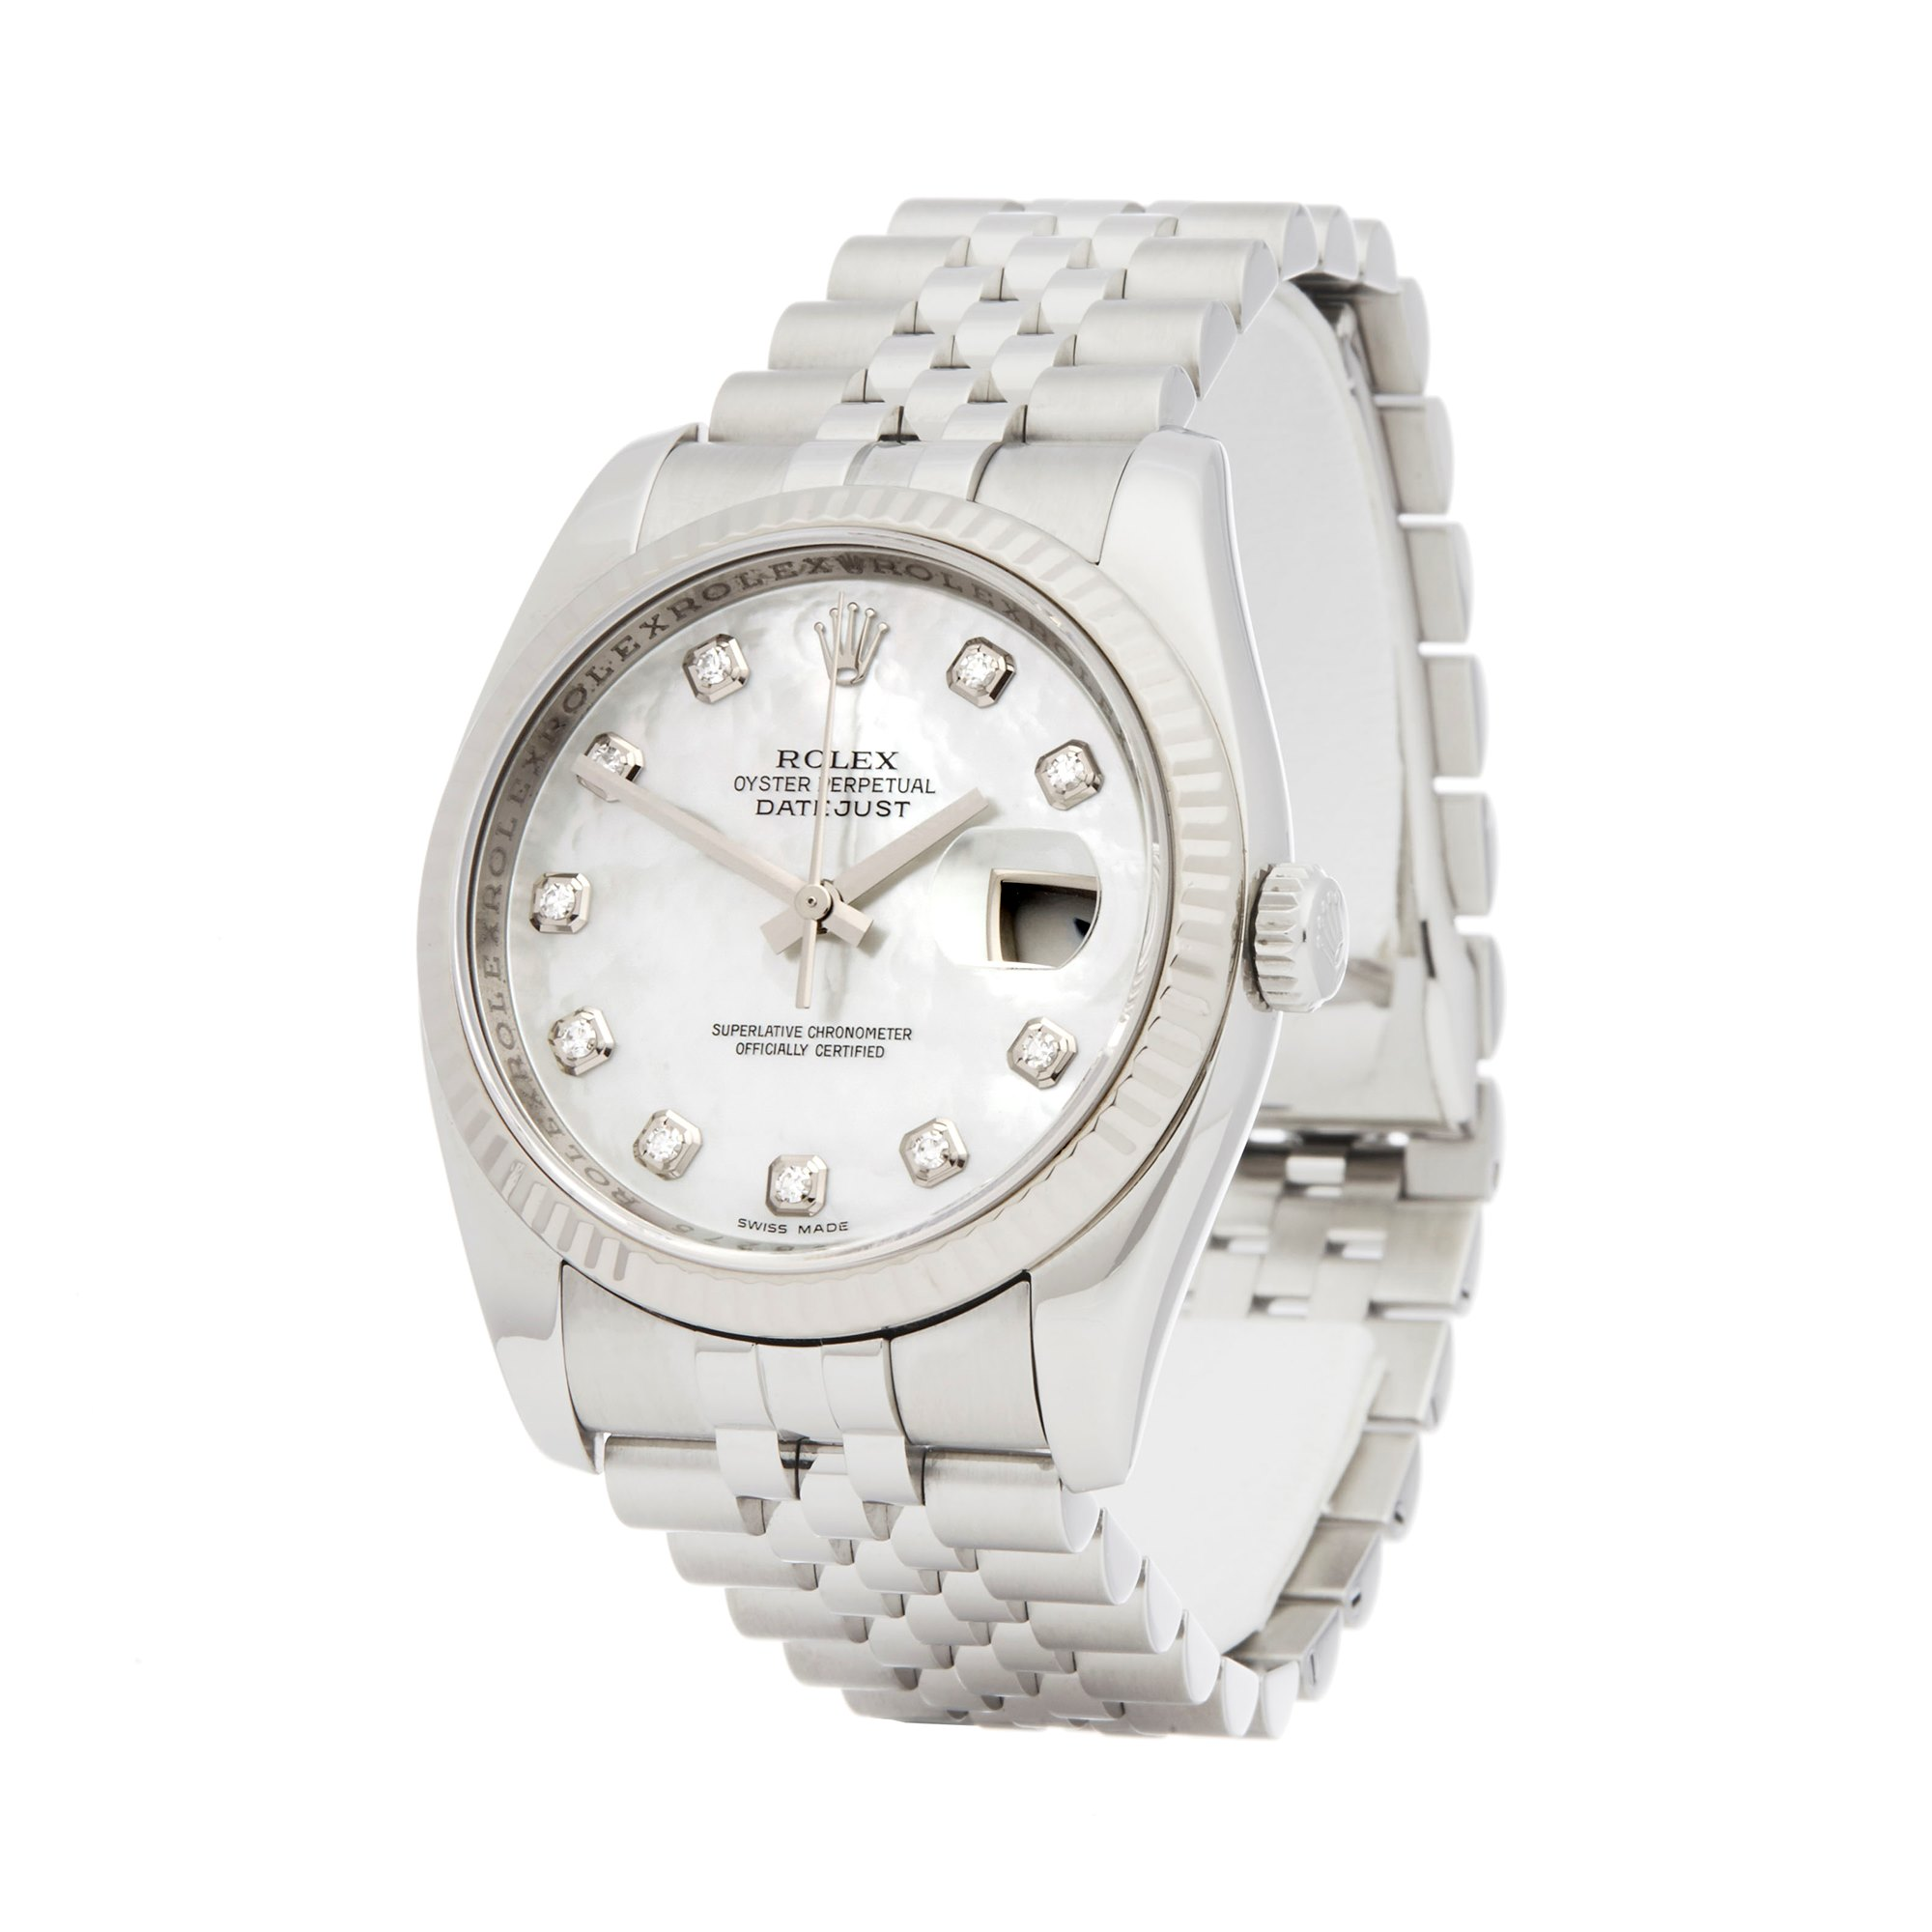 Rolex Datejust 36 Diamond Mother Of Pearl Stainless Steel & White Gold 116234